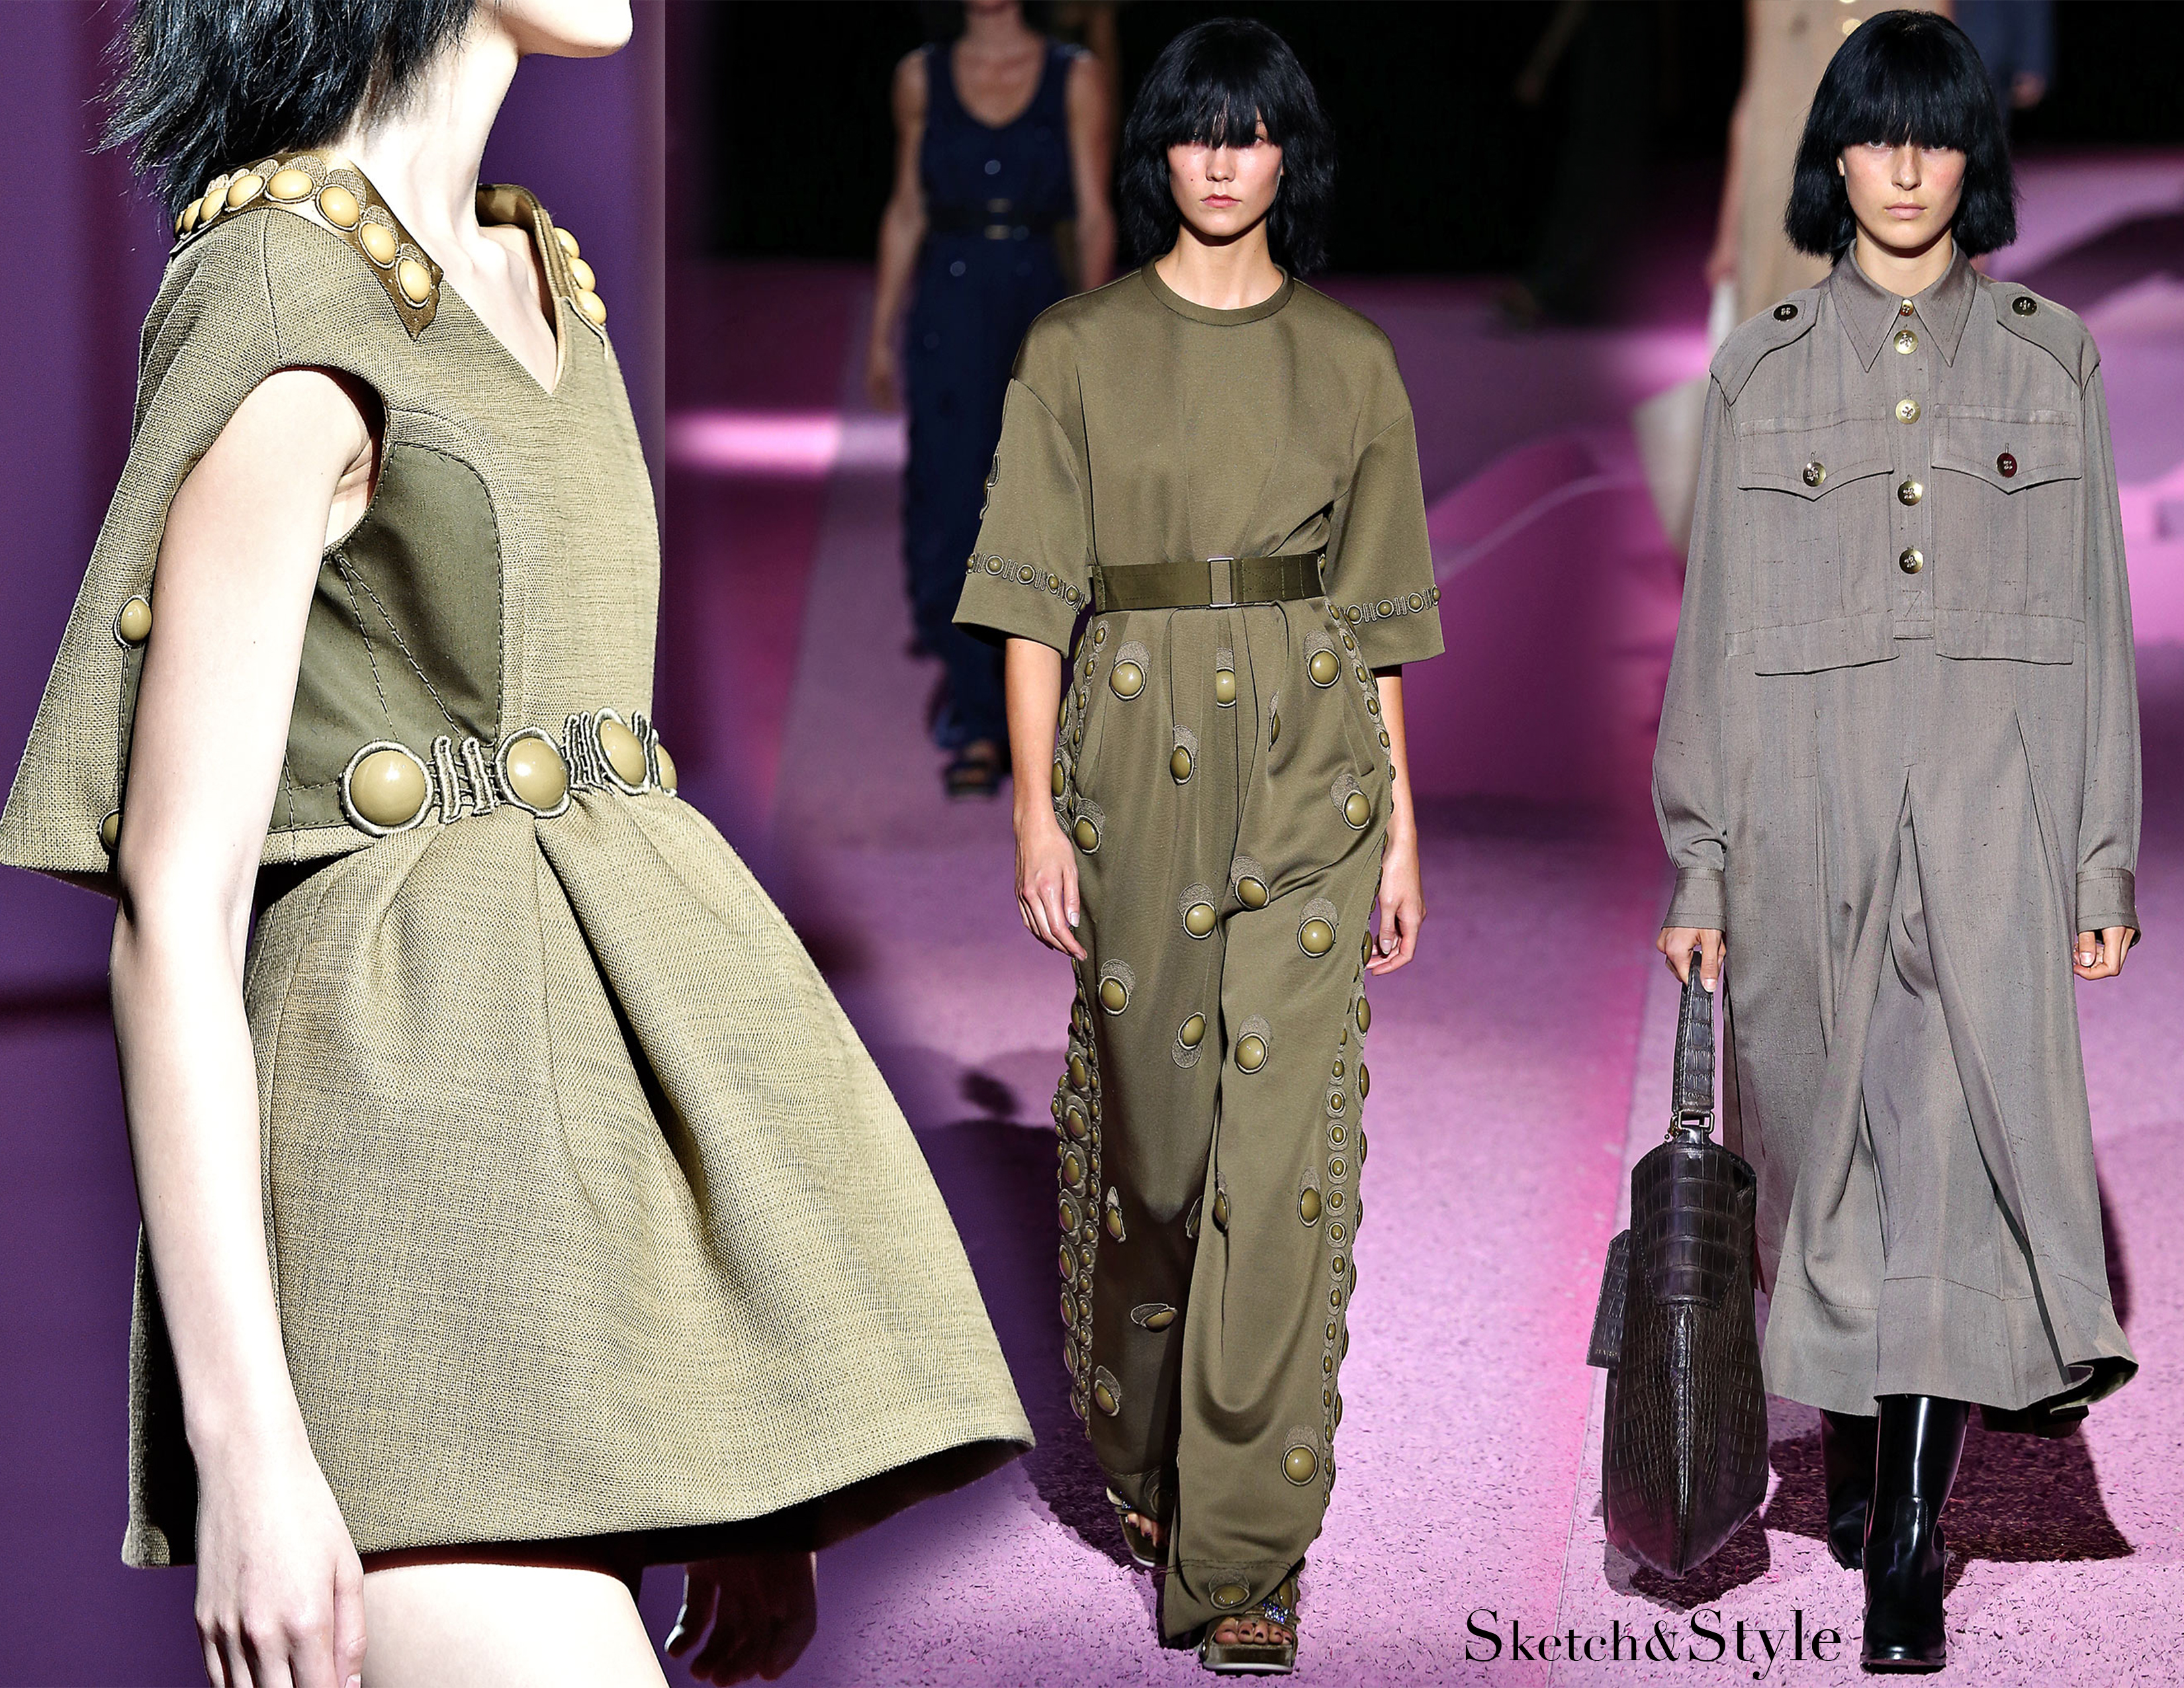 Marc Jacobs|Sketch&Style 4